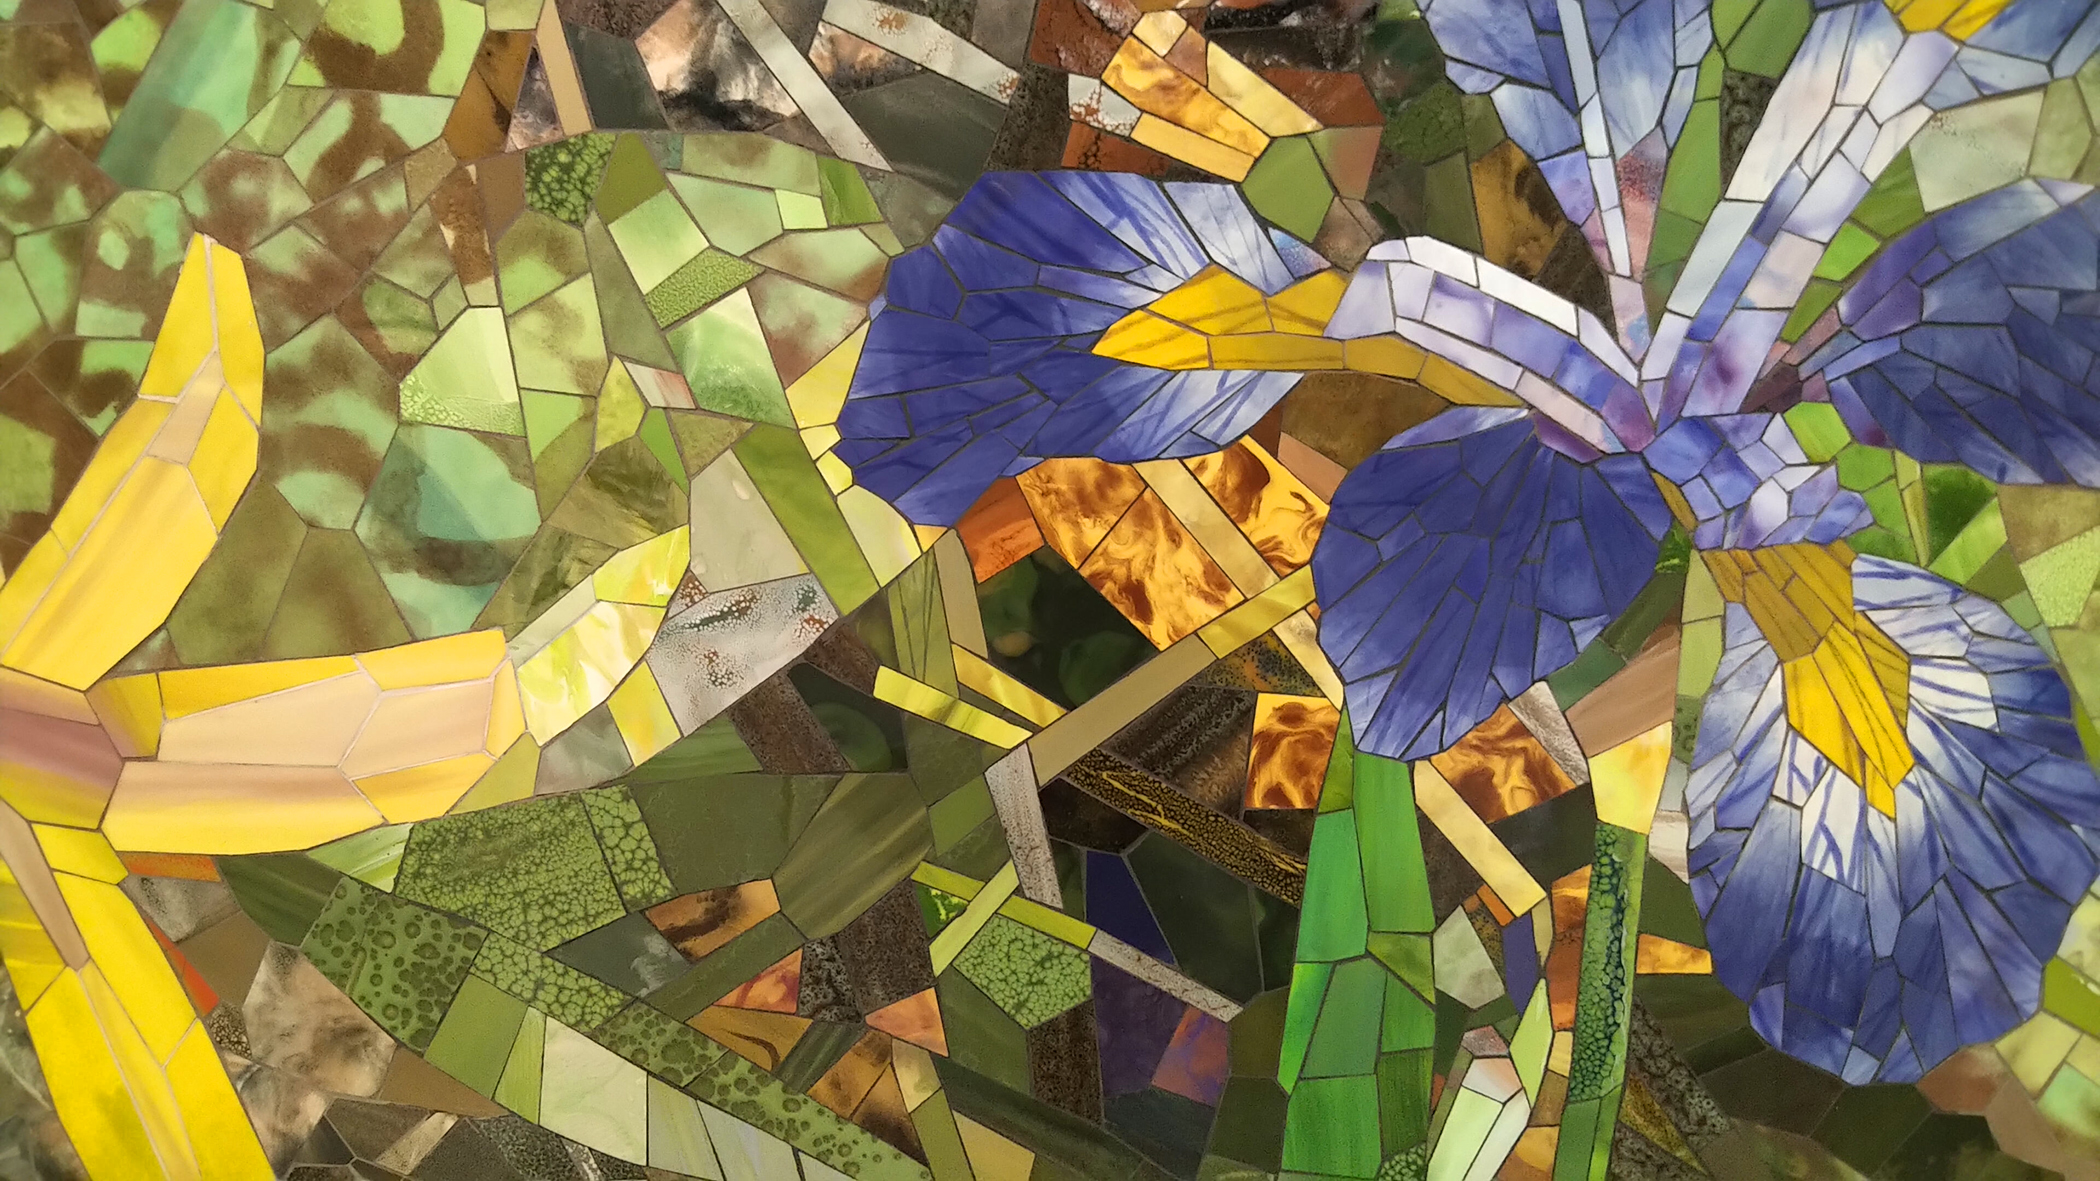 Trout Lily Blue Flag Iris detail 2 2020 ceramic mosaic 8x14ft by Contemporary Canadian Artist Katharine Harvey